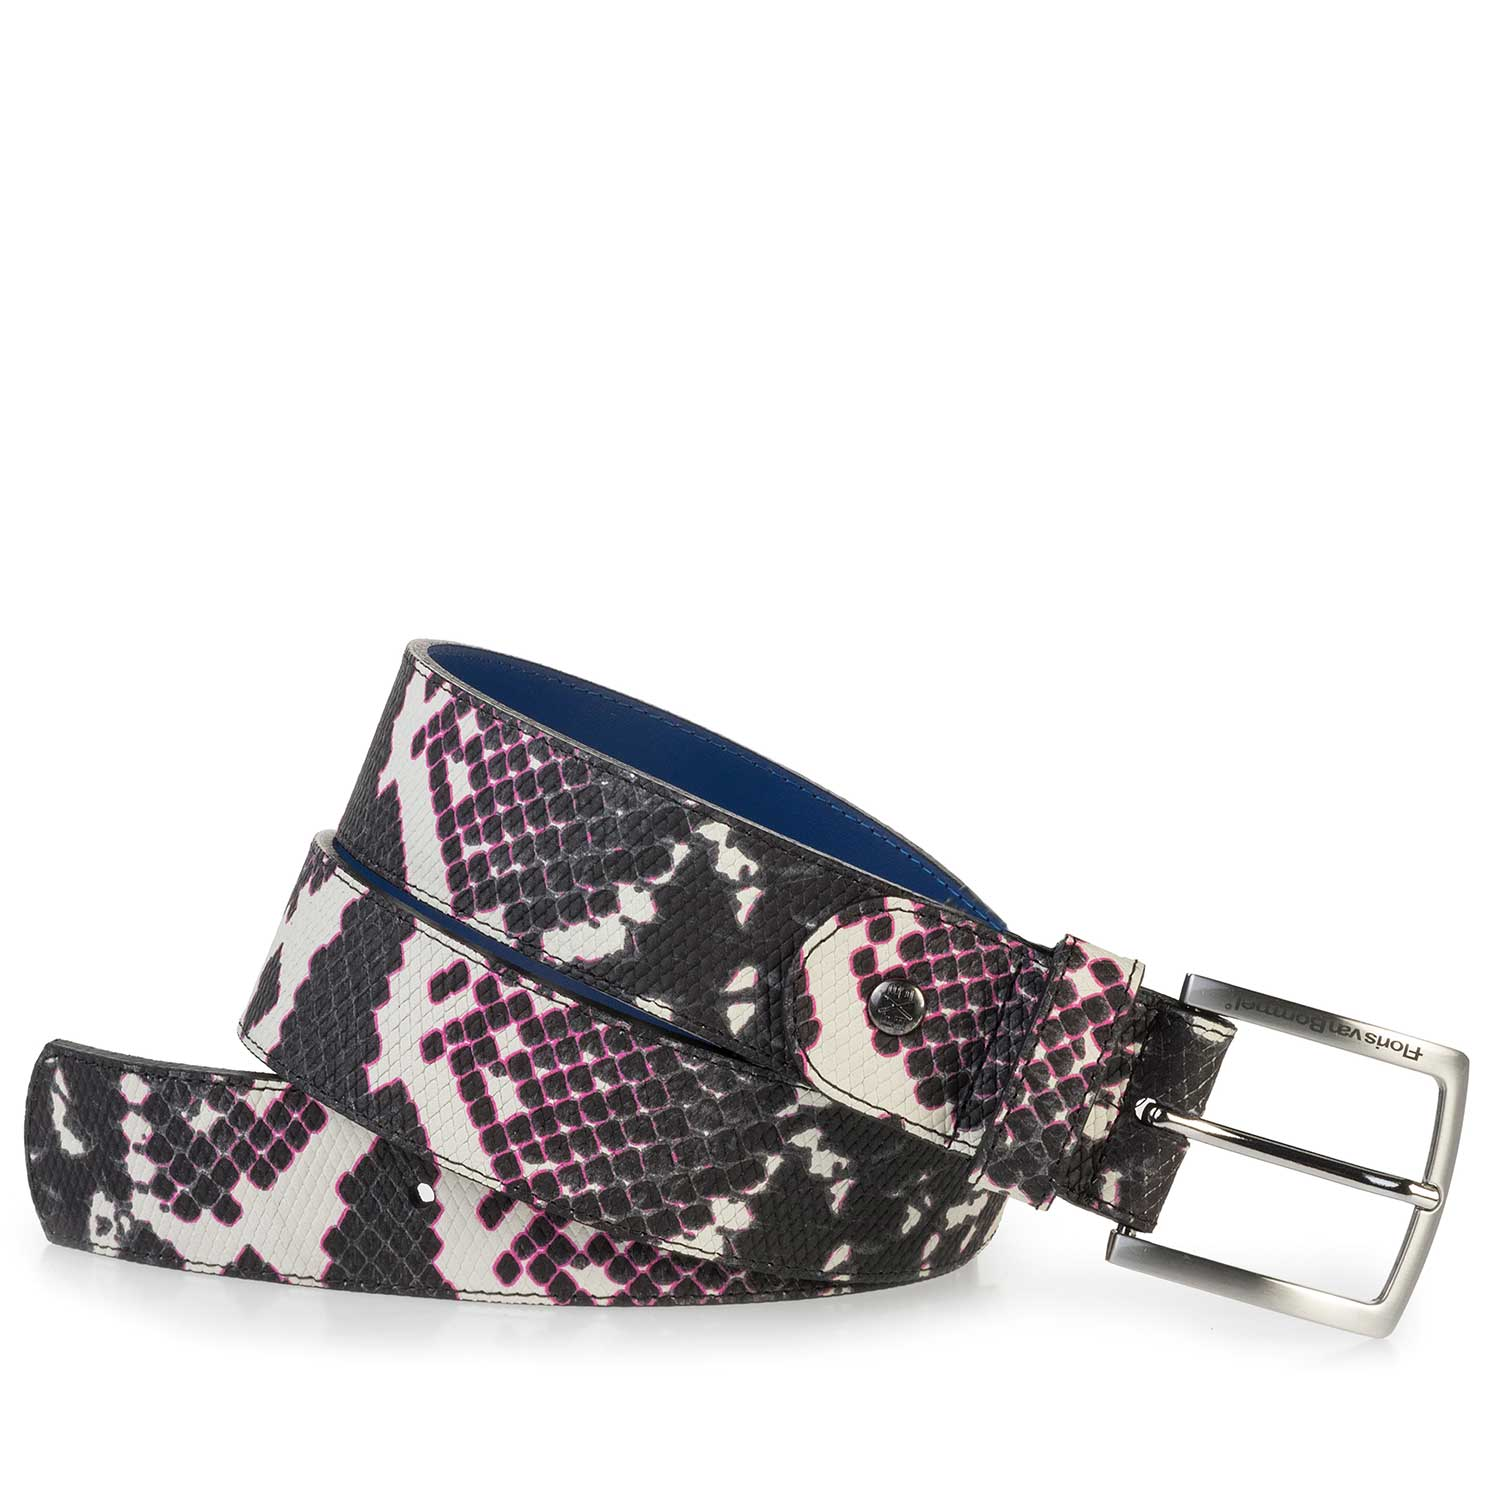 75184/18 - White leather belt with a black snake print